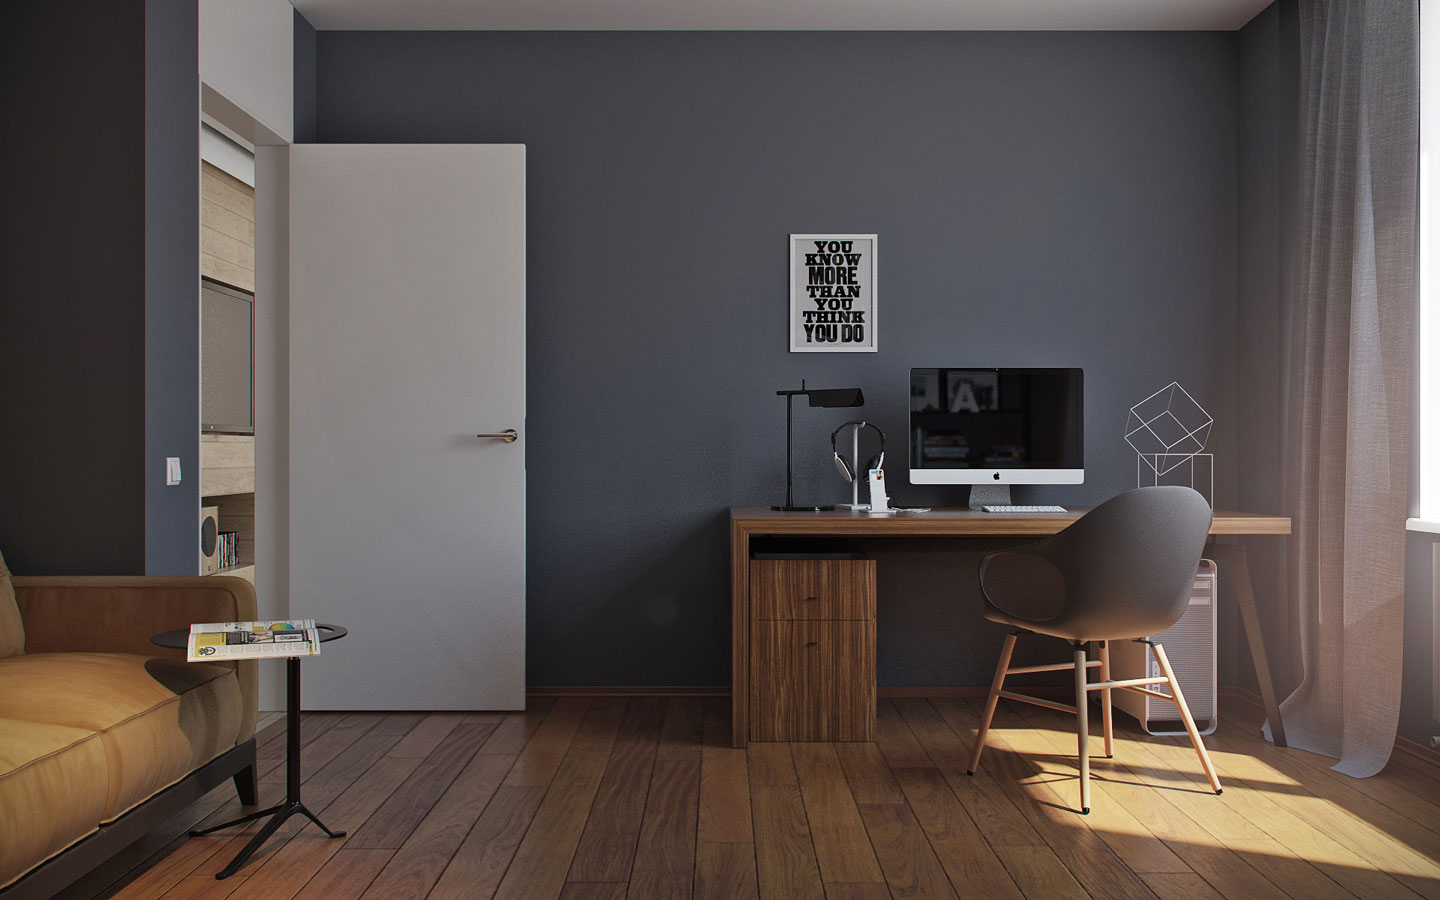 Beau Grey Office Walls Grey Office Walls Astounding Paint Wall For Ideas Grey  Office Walls Grey Office With Black Furniture Dark Grey Office Walls Office  Room ...